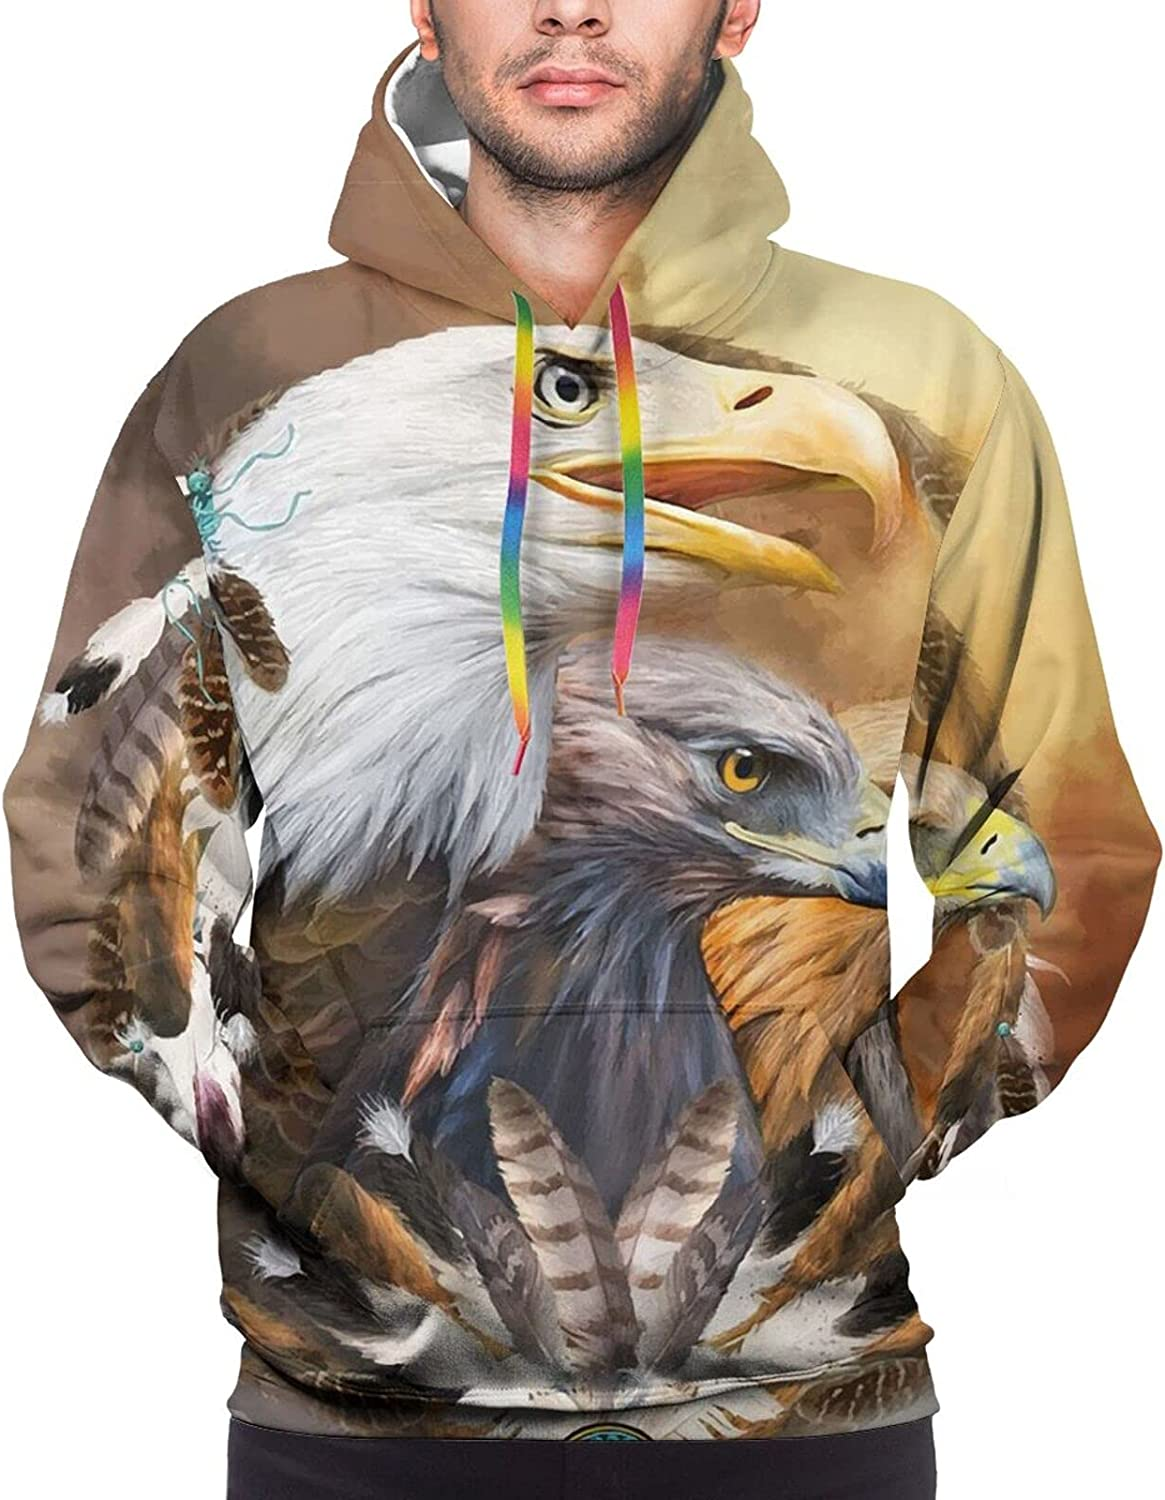 Hoodie For Teens Boys Girls Eagle Feather Dream Catch Hoodies Pullover Sweatshirt Pockets